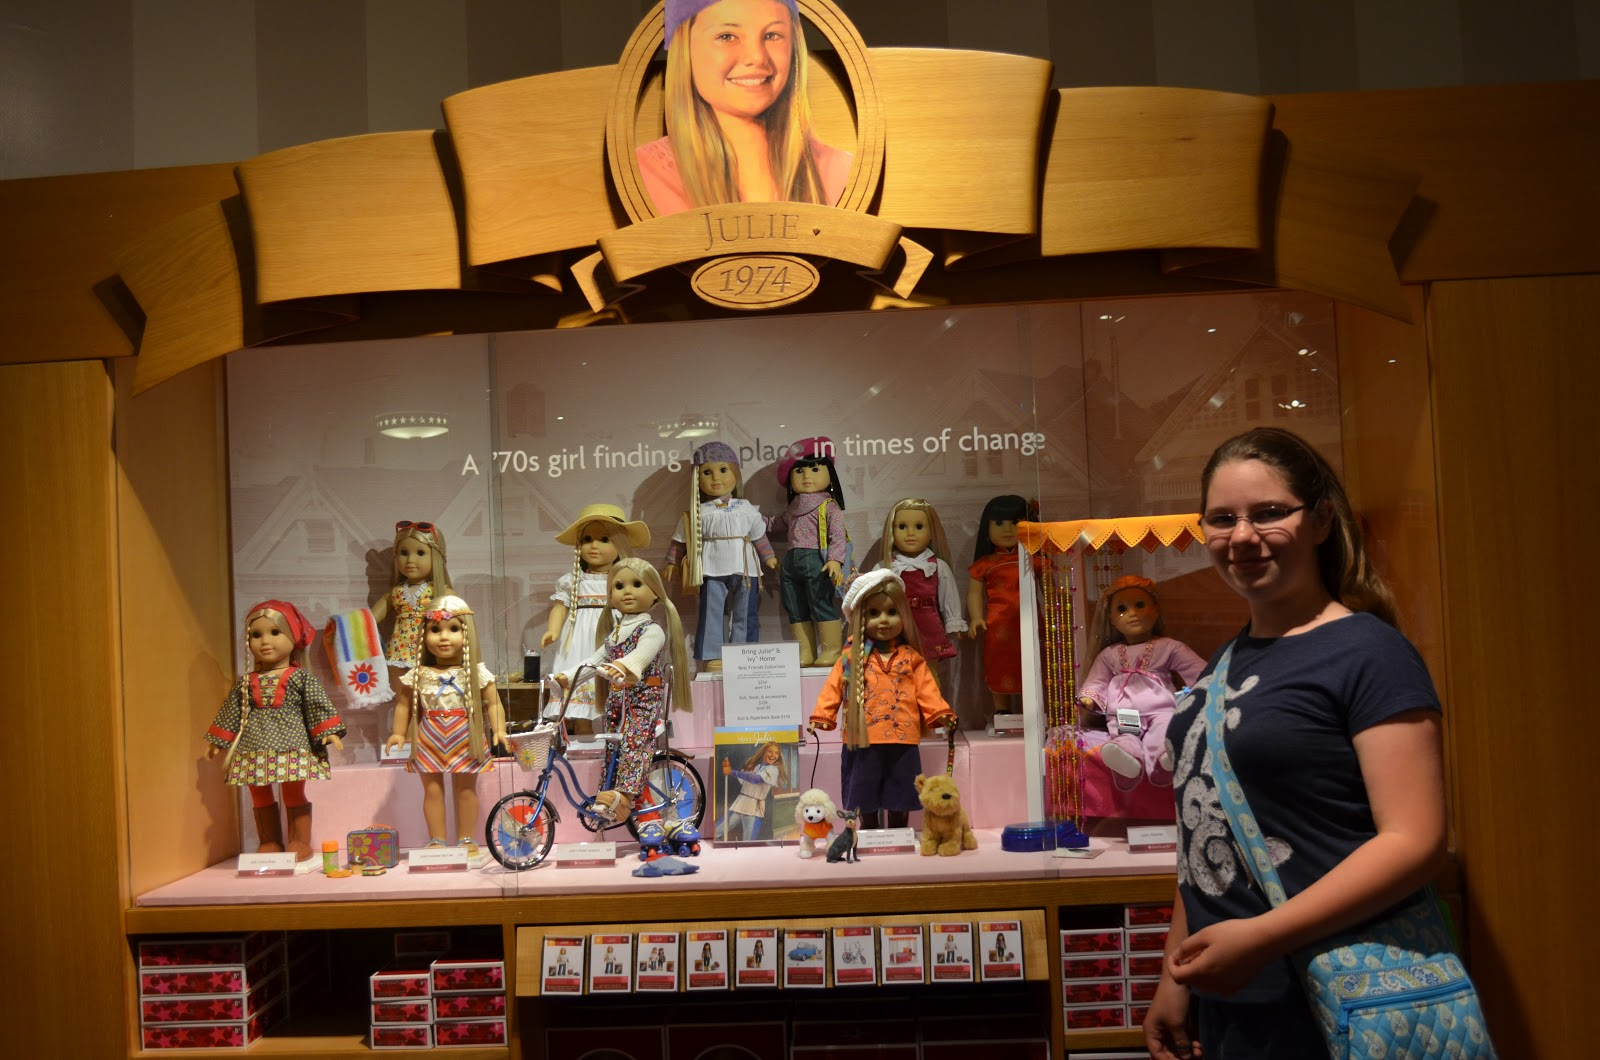 MSIMJ excursions: Central Park, FAO Schwarz, and American Girl Place